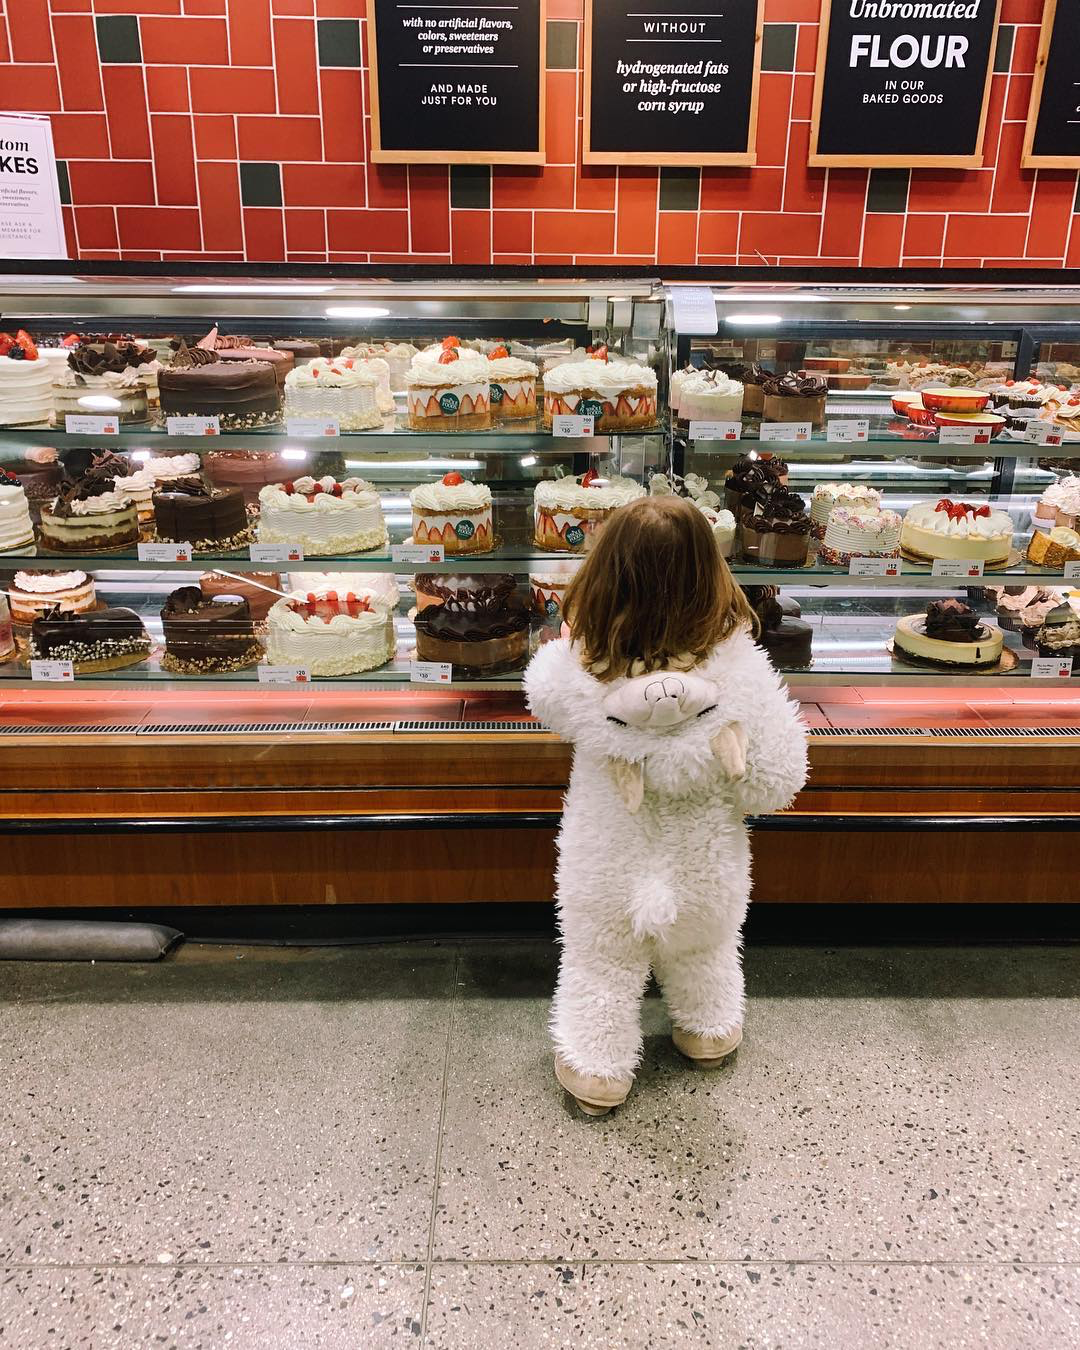 Child wearing a llama costume looking at a case of cakes in a bakery.